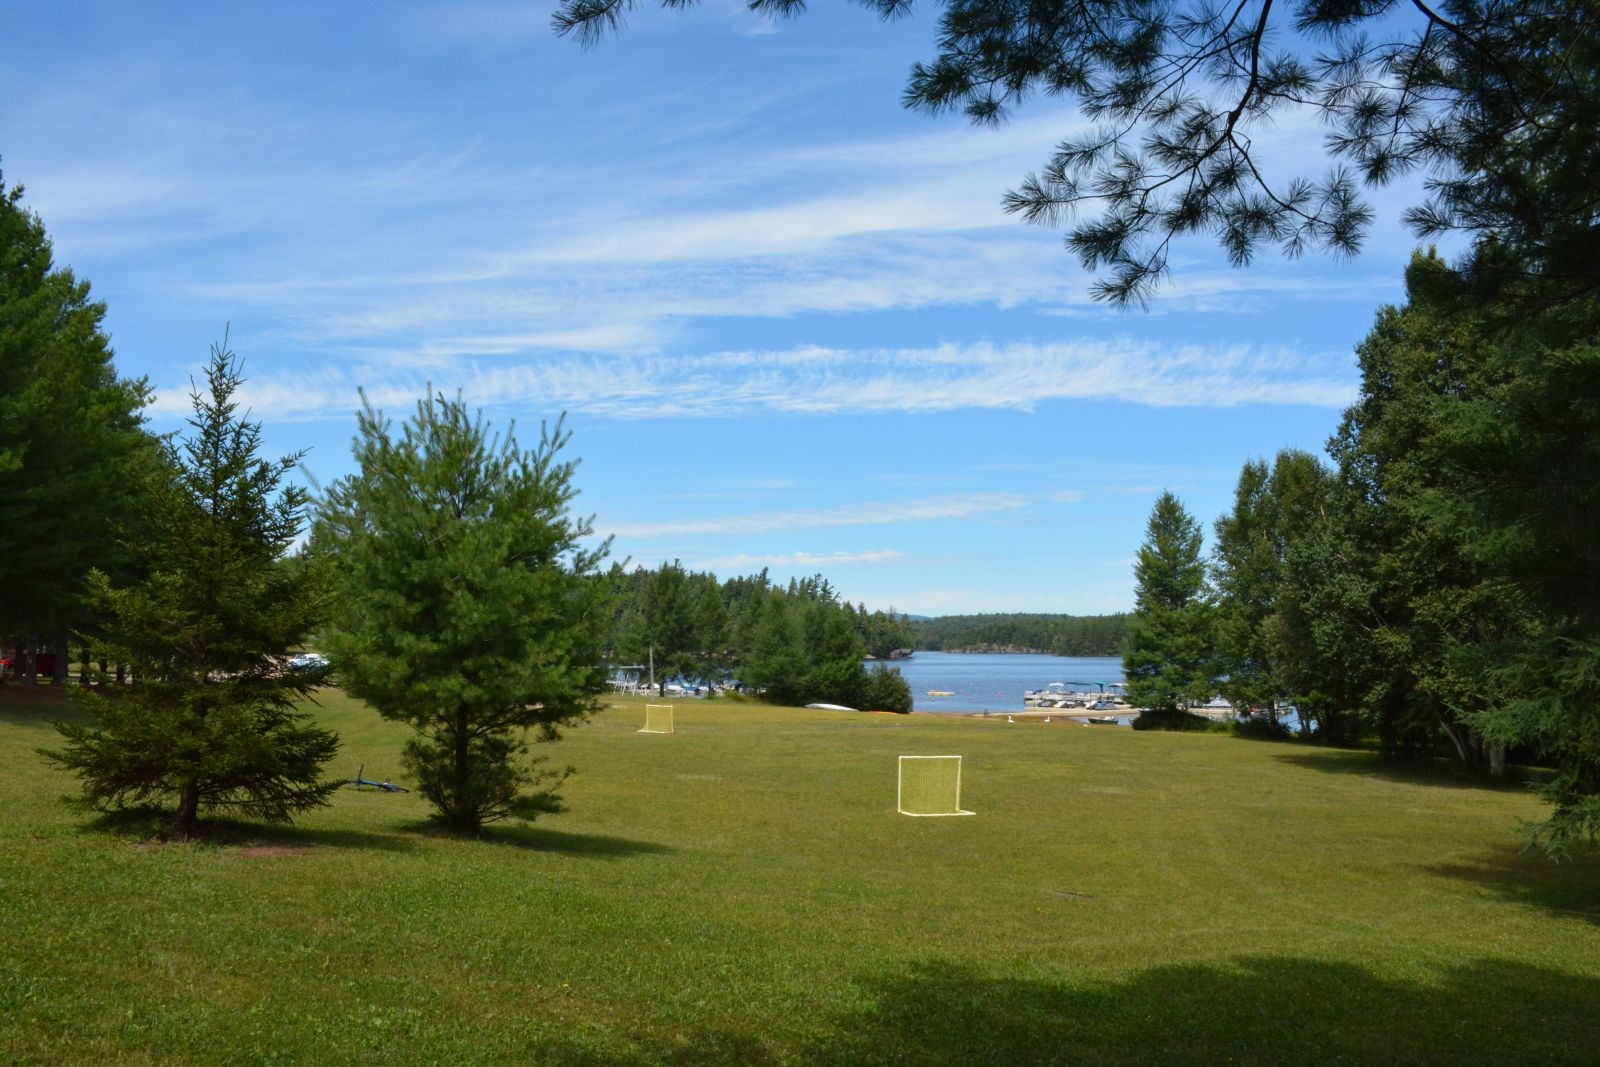 The Blue Jay Campsite property includes a beautiful stretch of lawn that leads down to the sandy beach.